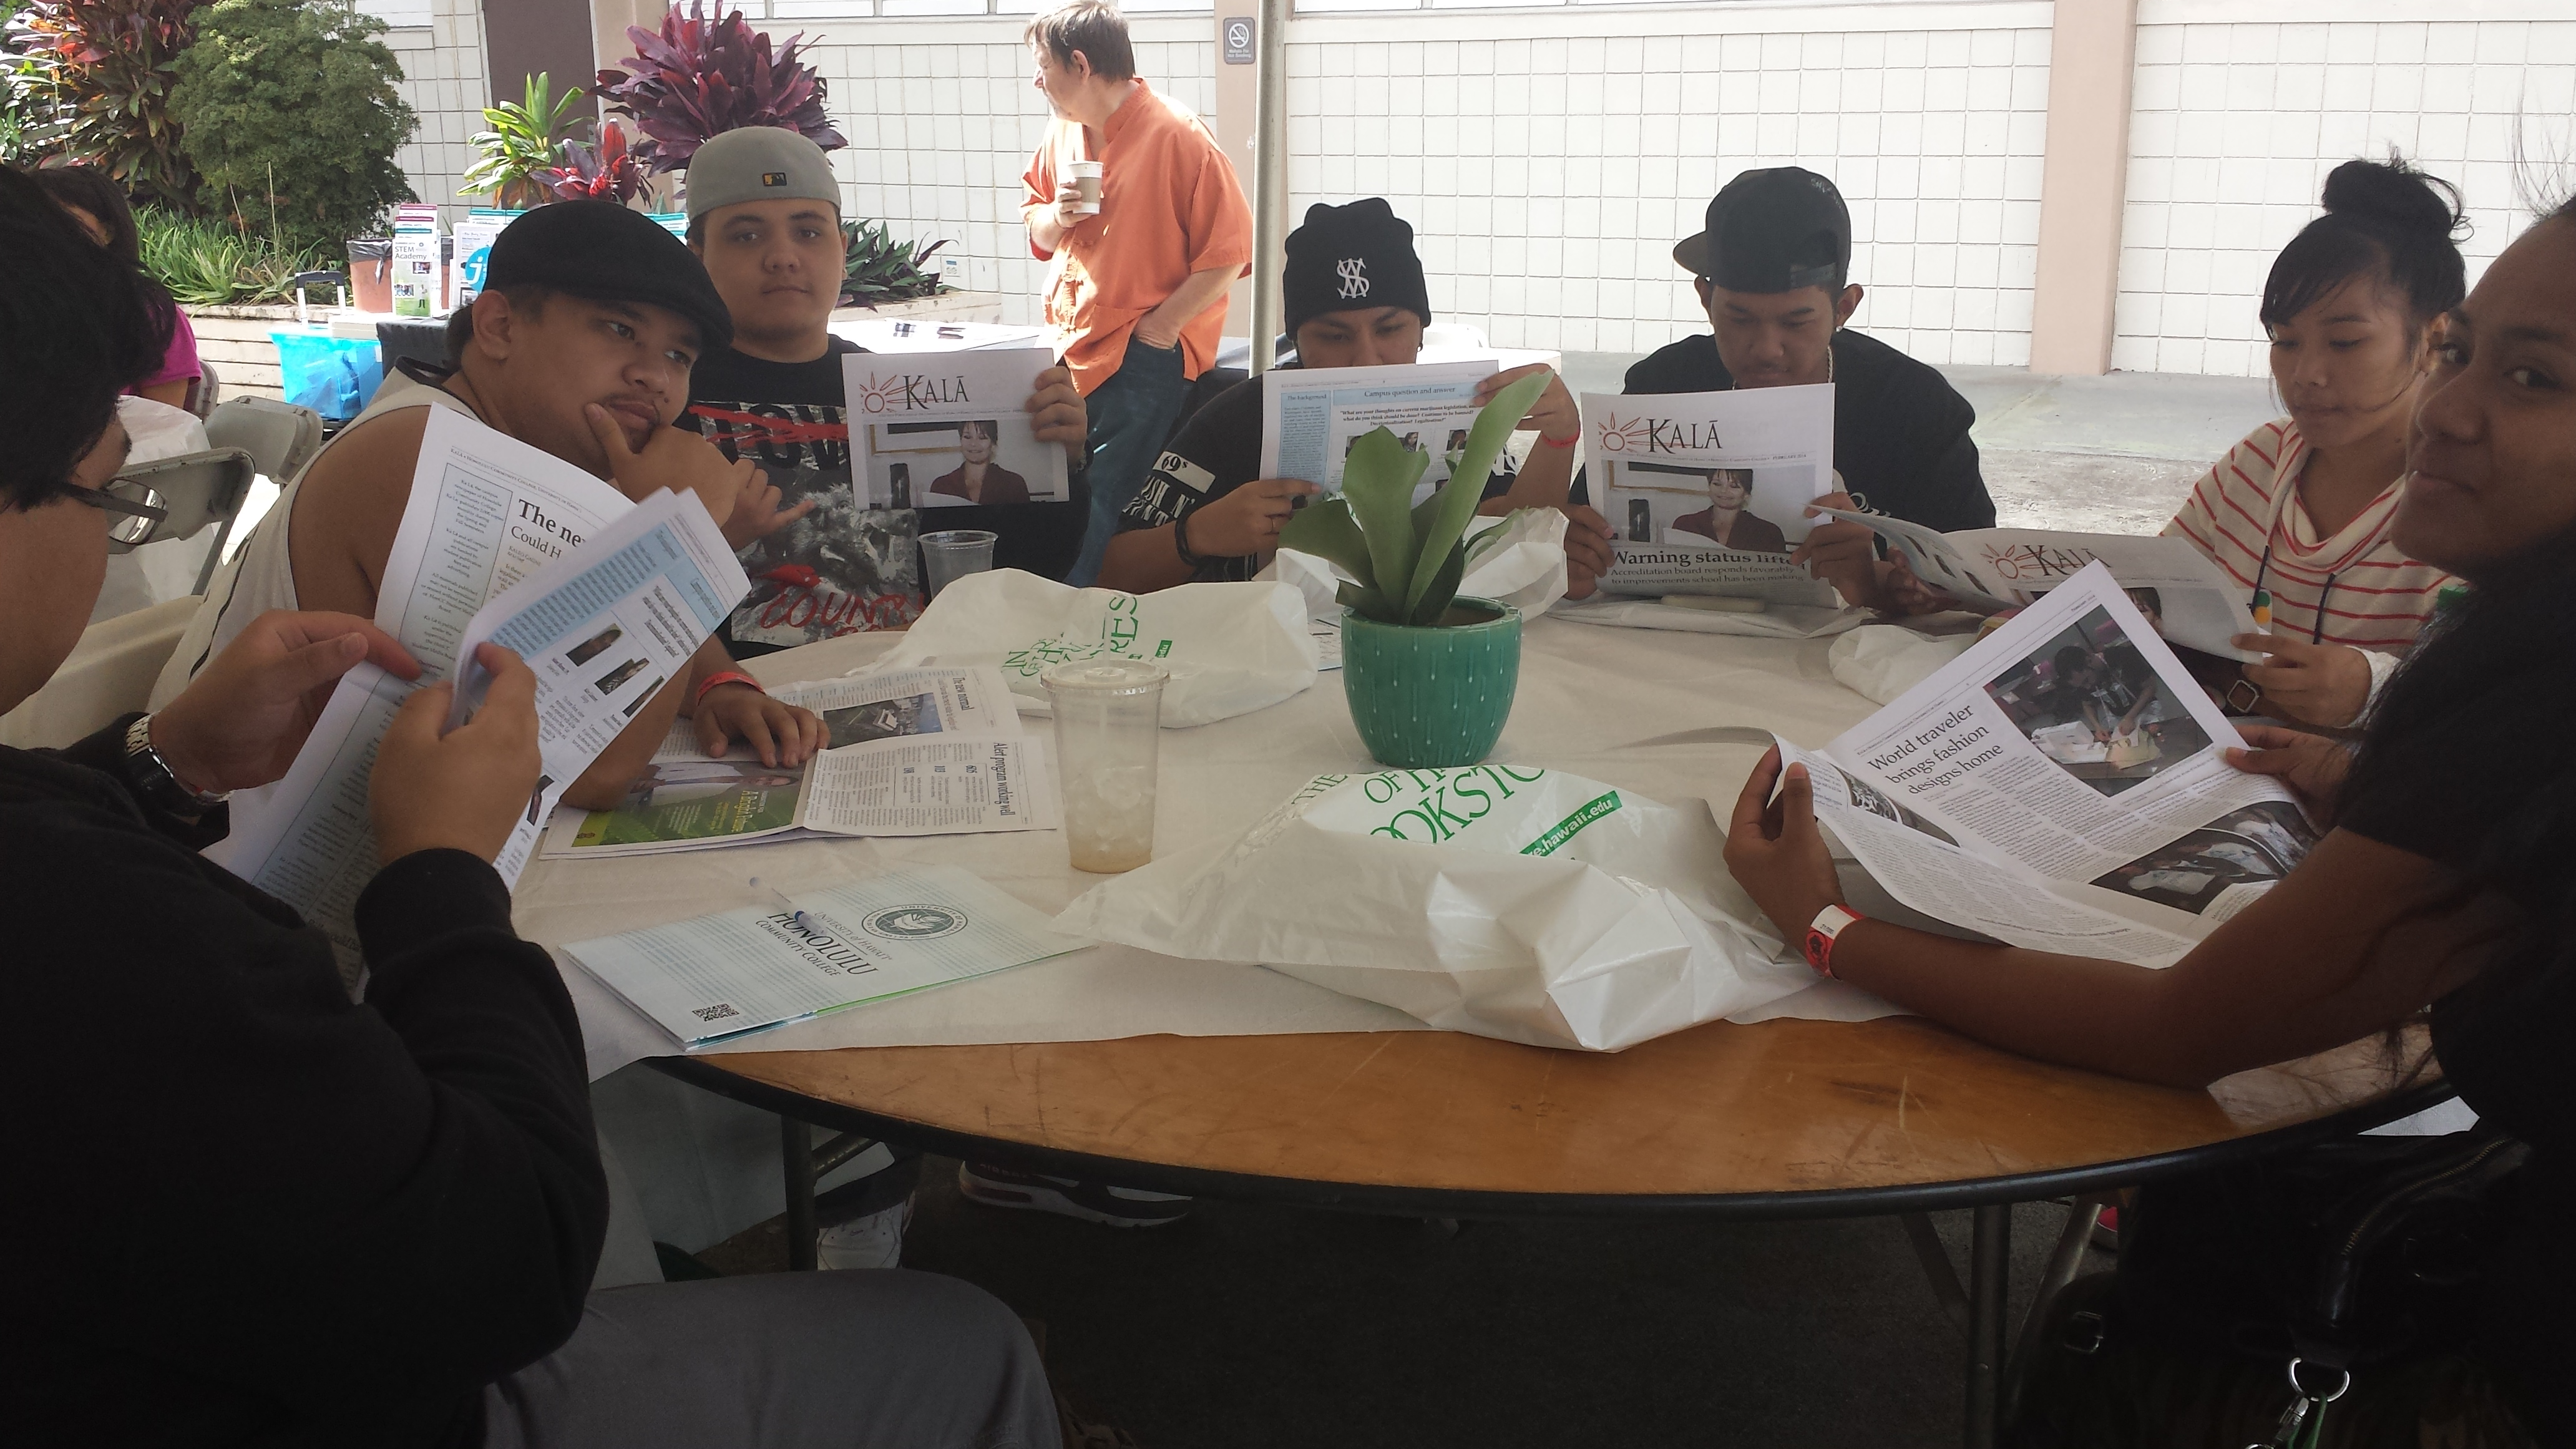 Visiting high school students read Ka La, the HCC student newspaper, during their visit to campus Tuesday.